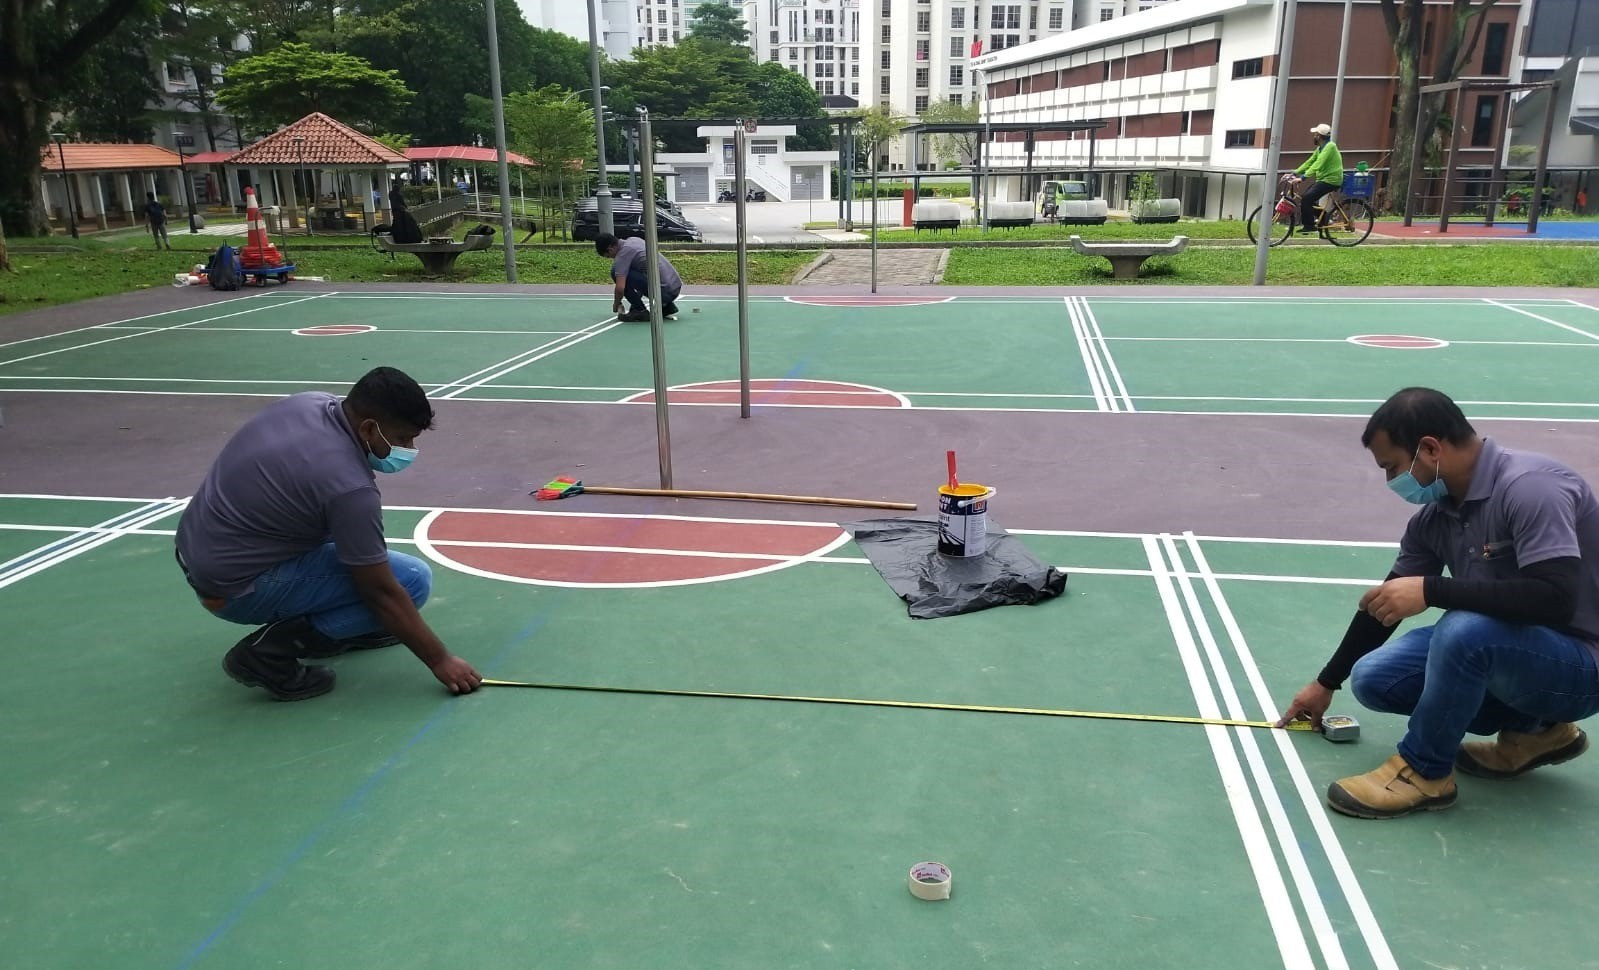 Court painted on 15 Sep 2020